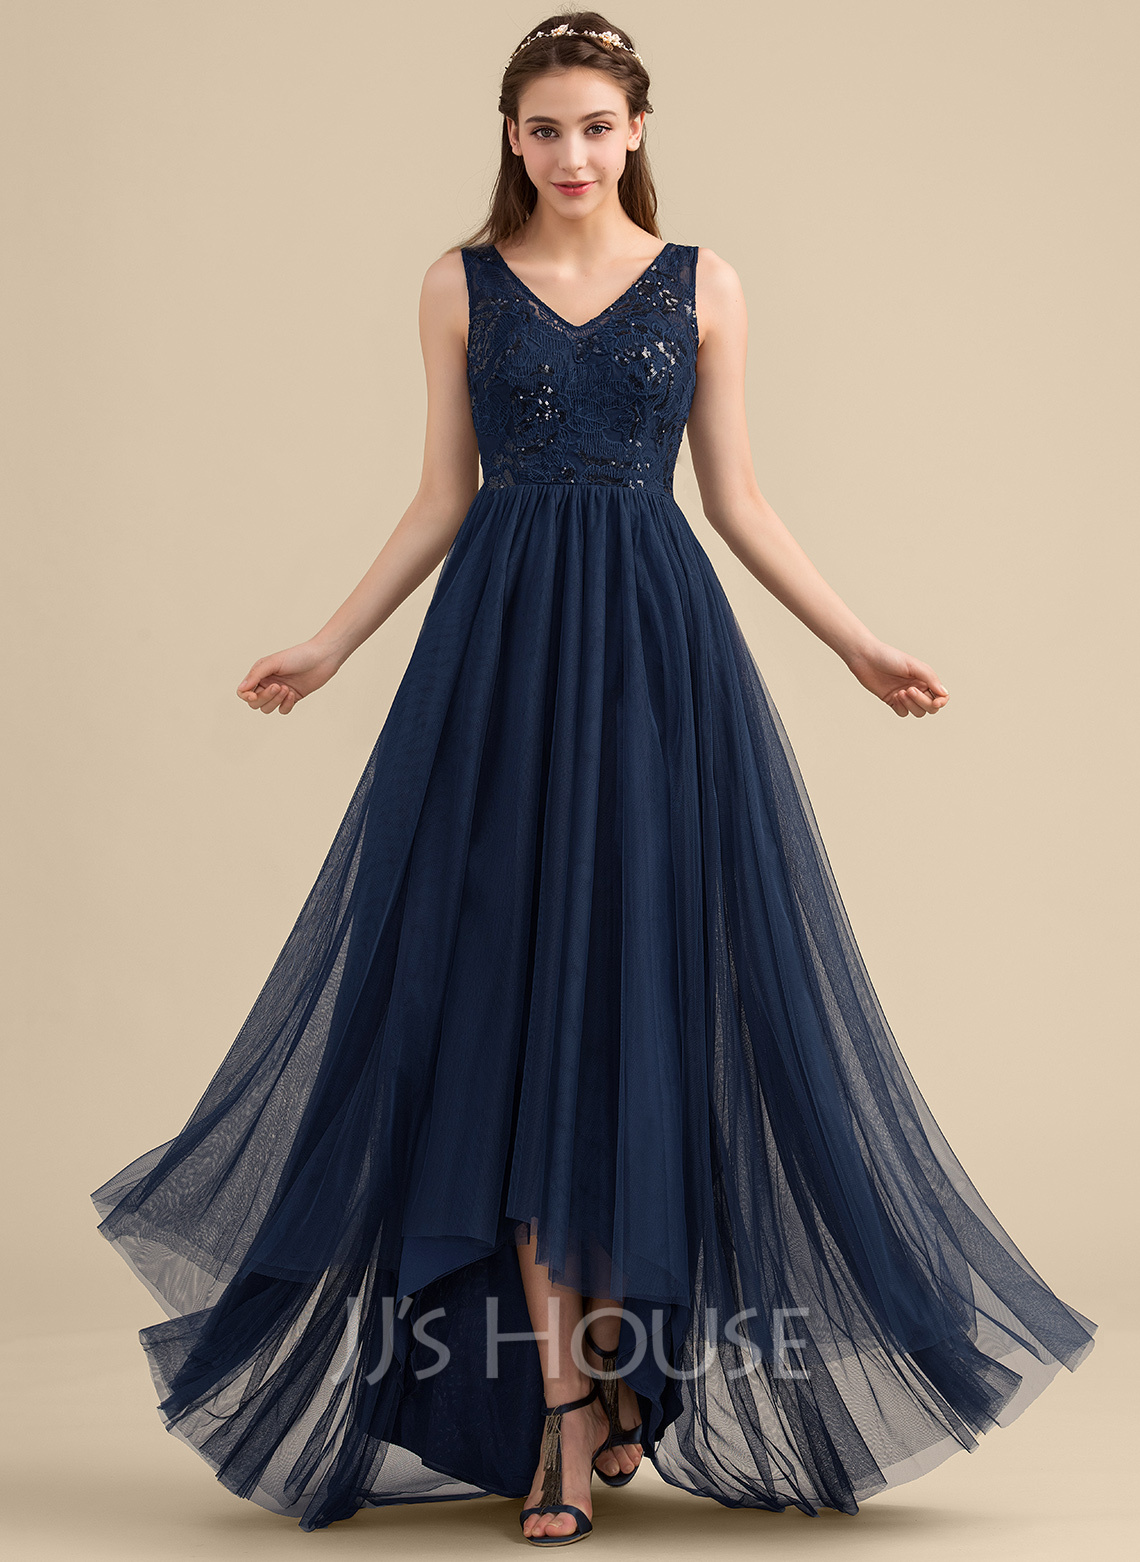 ec00eb5f0a A-Line Princess V-neck Asymmetrical Tulle Lace Bridesmaid Dress With  Sequins. Loading zoom